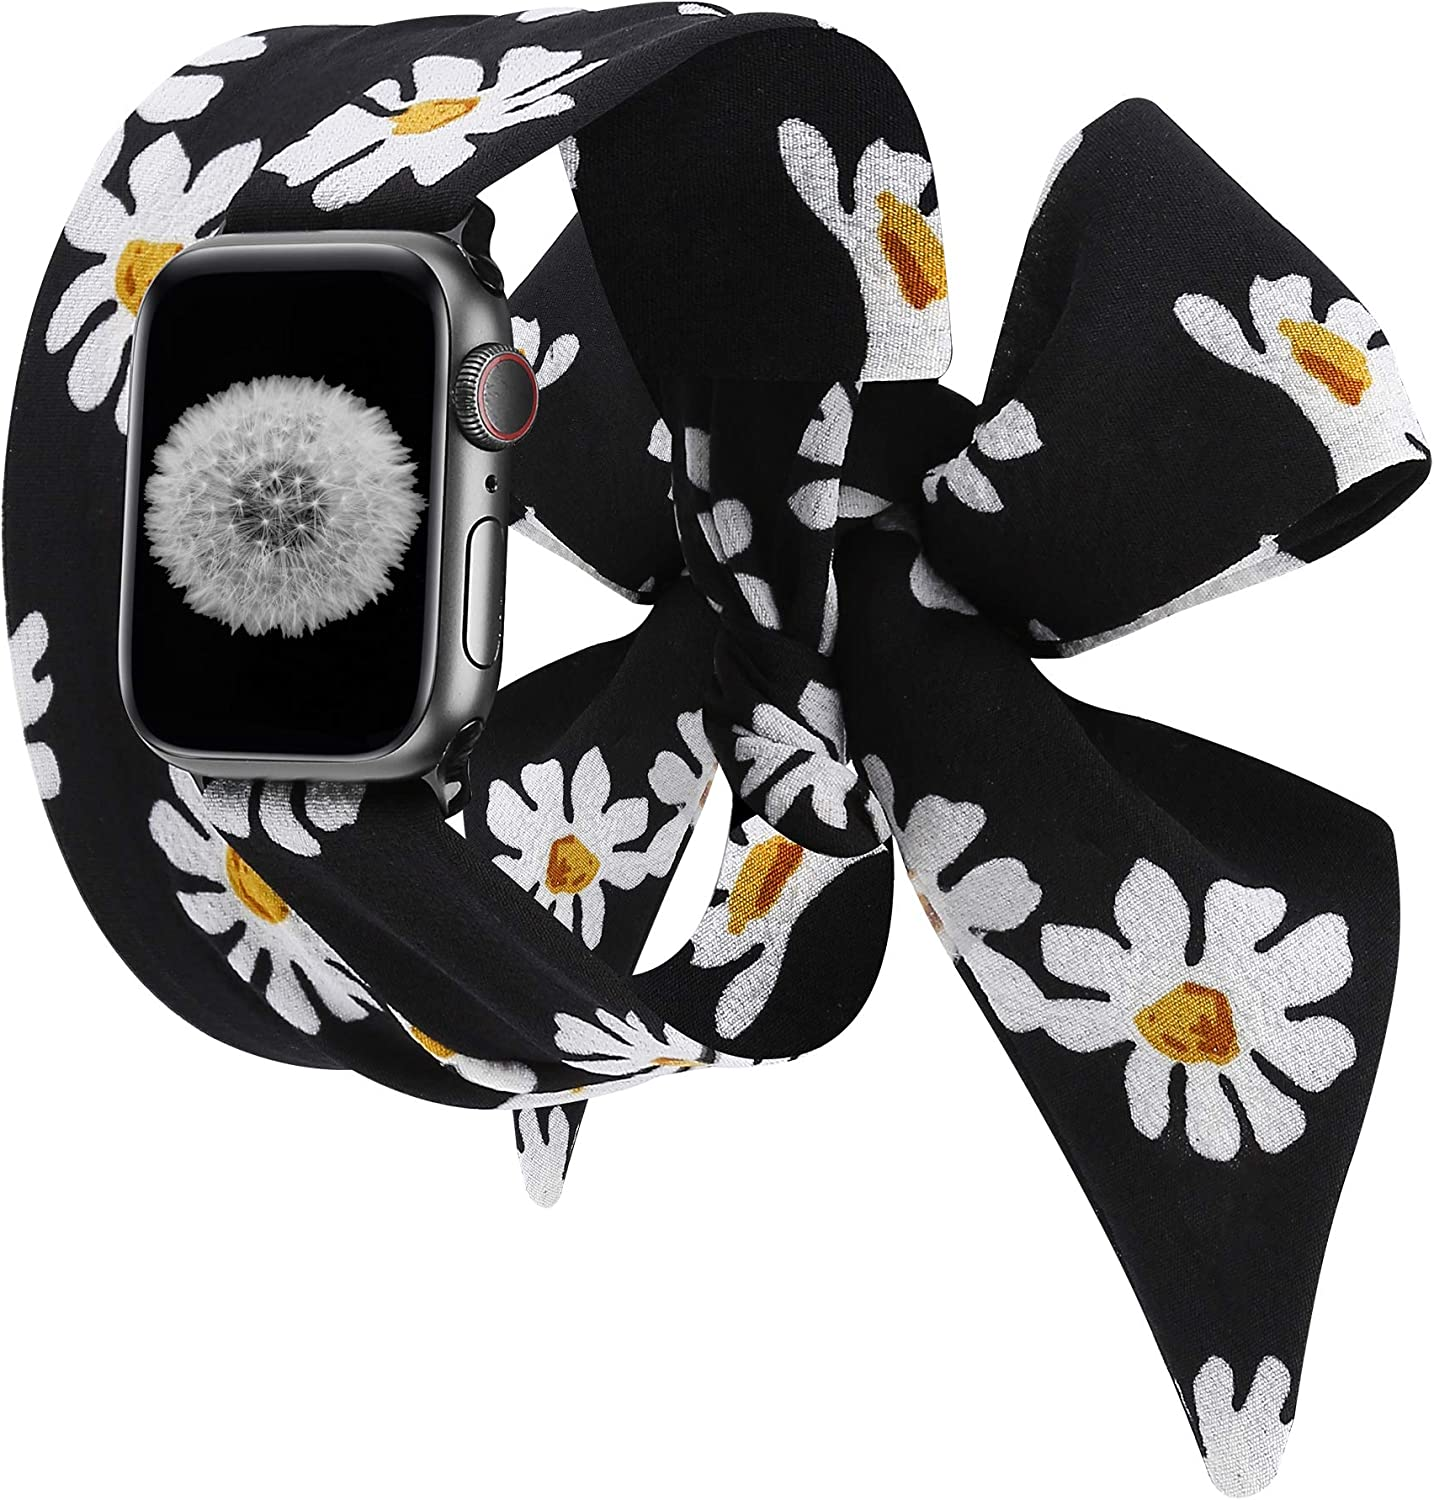 Wearlizer Compatible with Apple Watch Scarf Bands 38mm 40mm for iWatch Band Women Girls Fashion Scarf Replacement Wrist Strap for Apple Watch SE Series 6 5 4 3 2 1 - Daisy